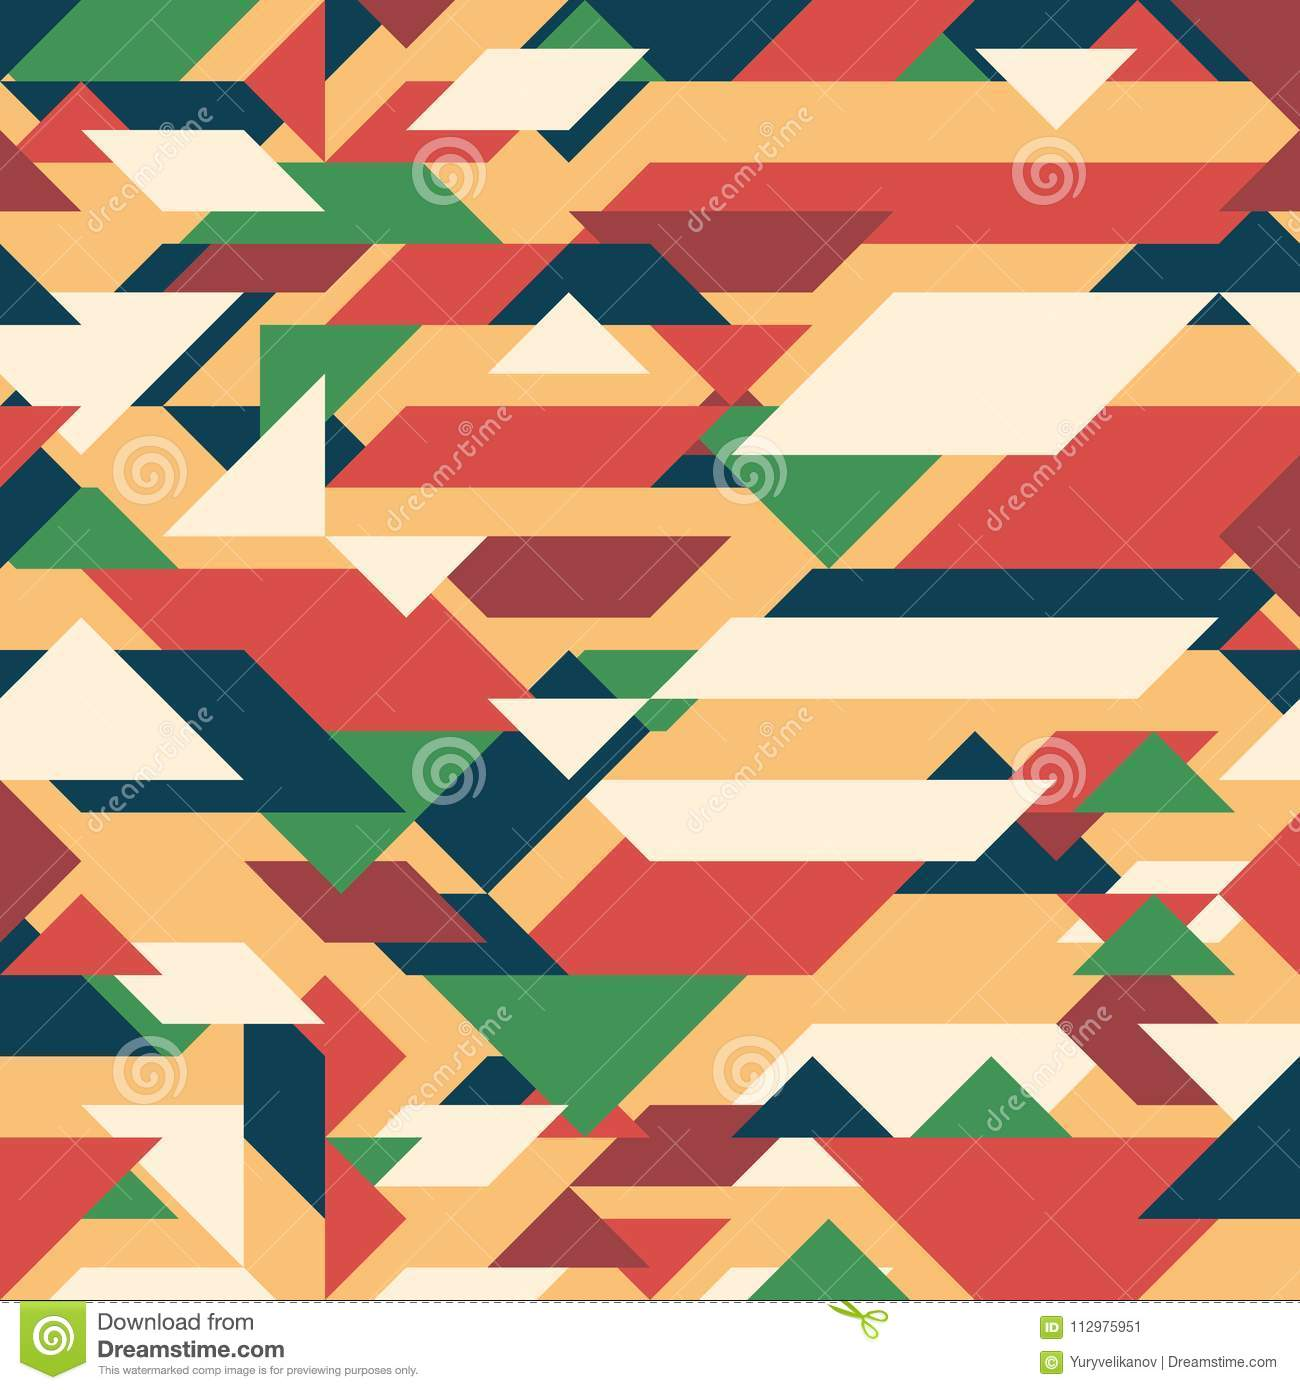 Abstract geometric background. Retro overlapping rectangles and triangles.